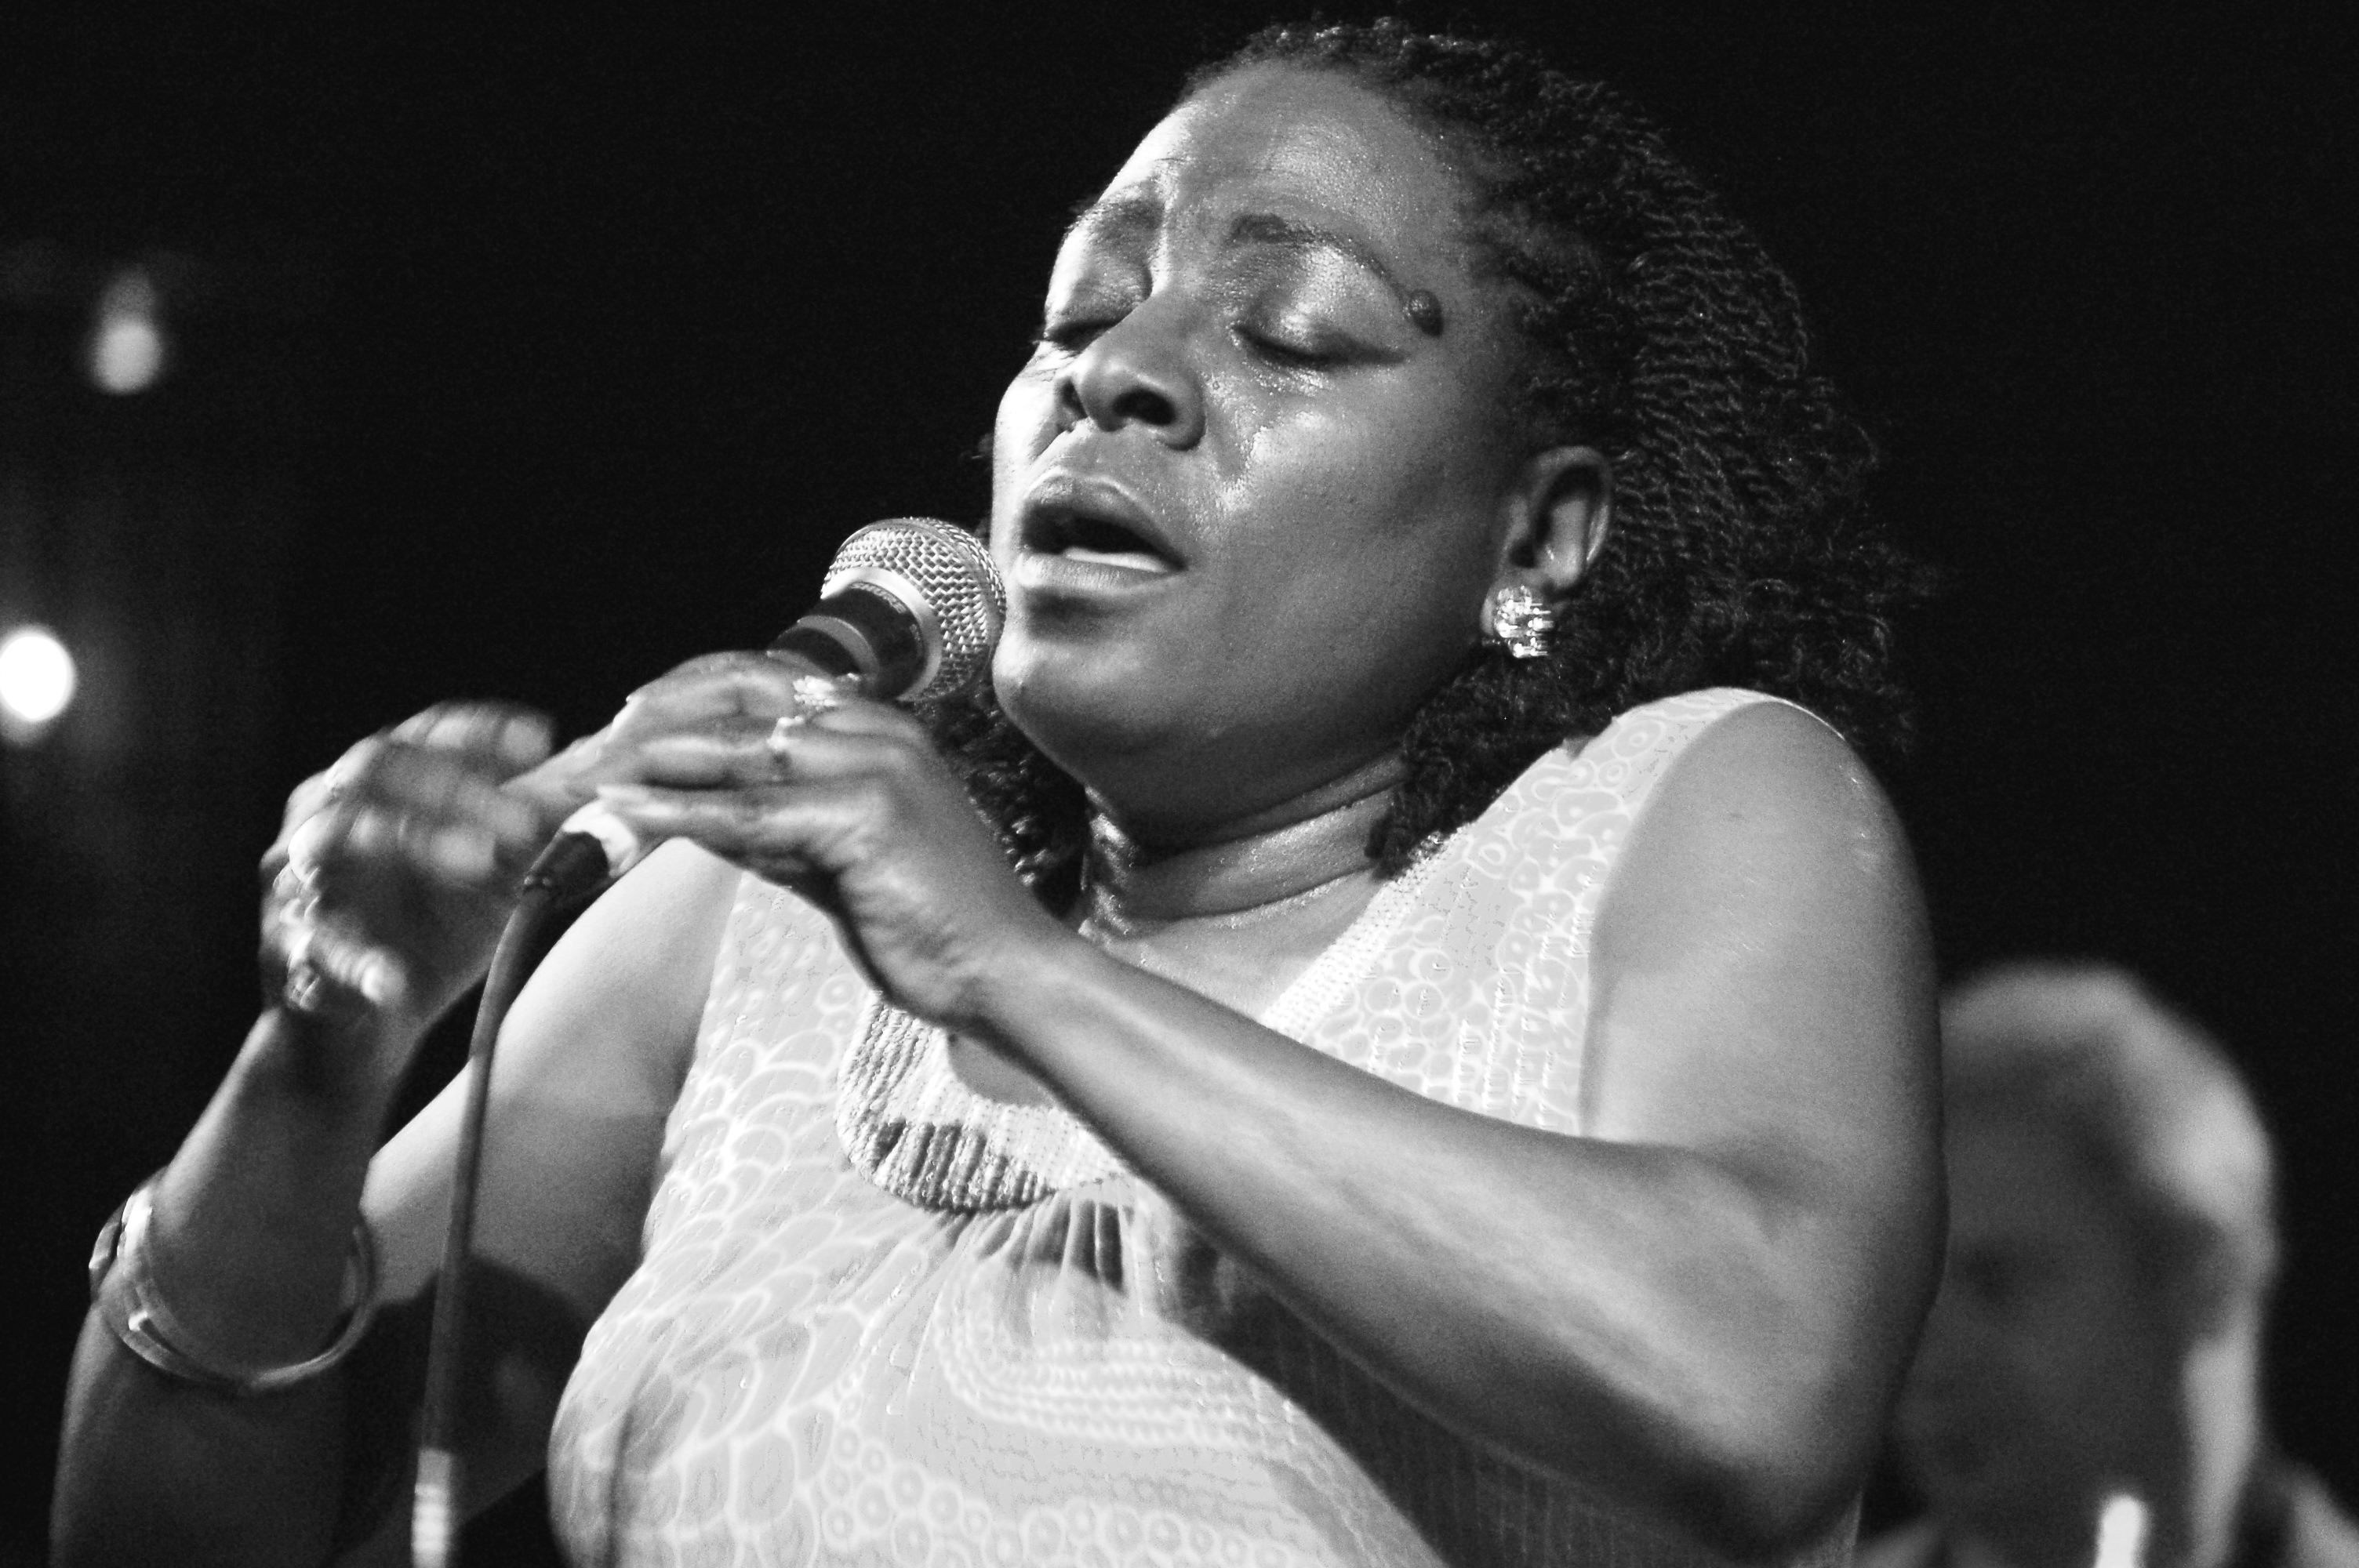 Photos/Review: Sharon Jones & The Dap Kings w/ Menahan Street Band